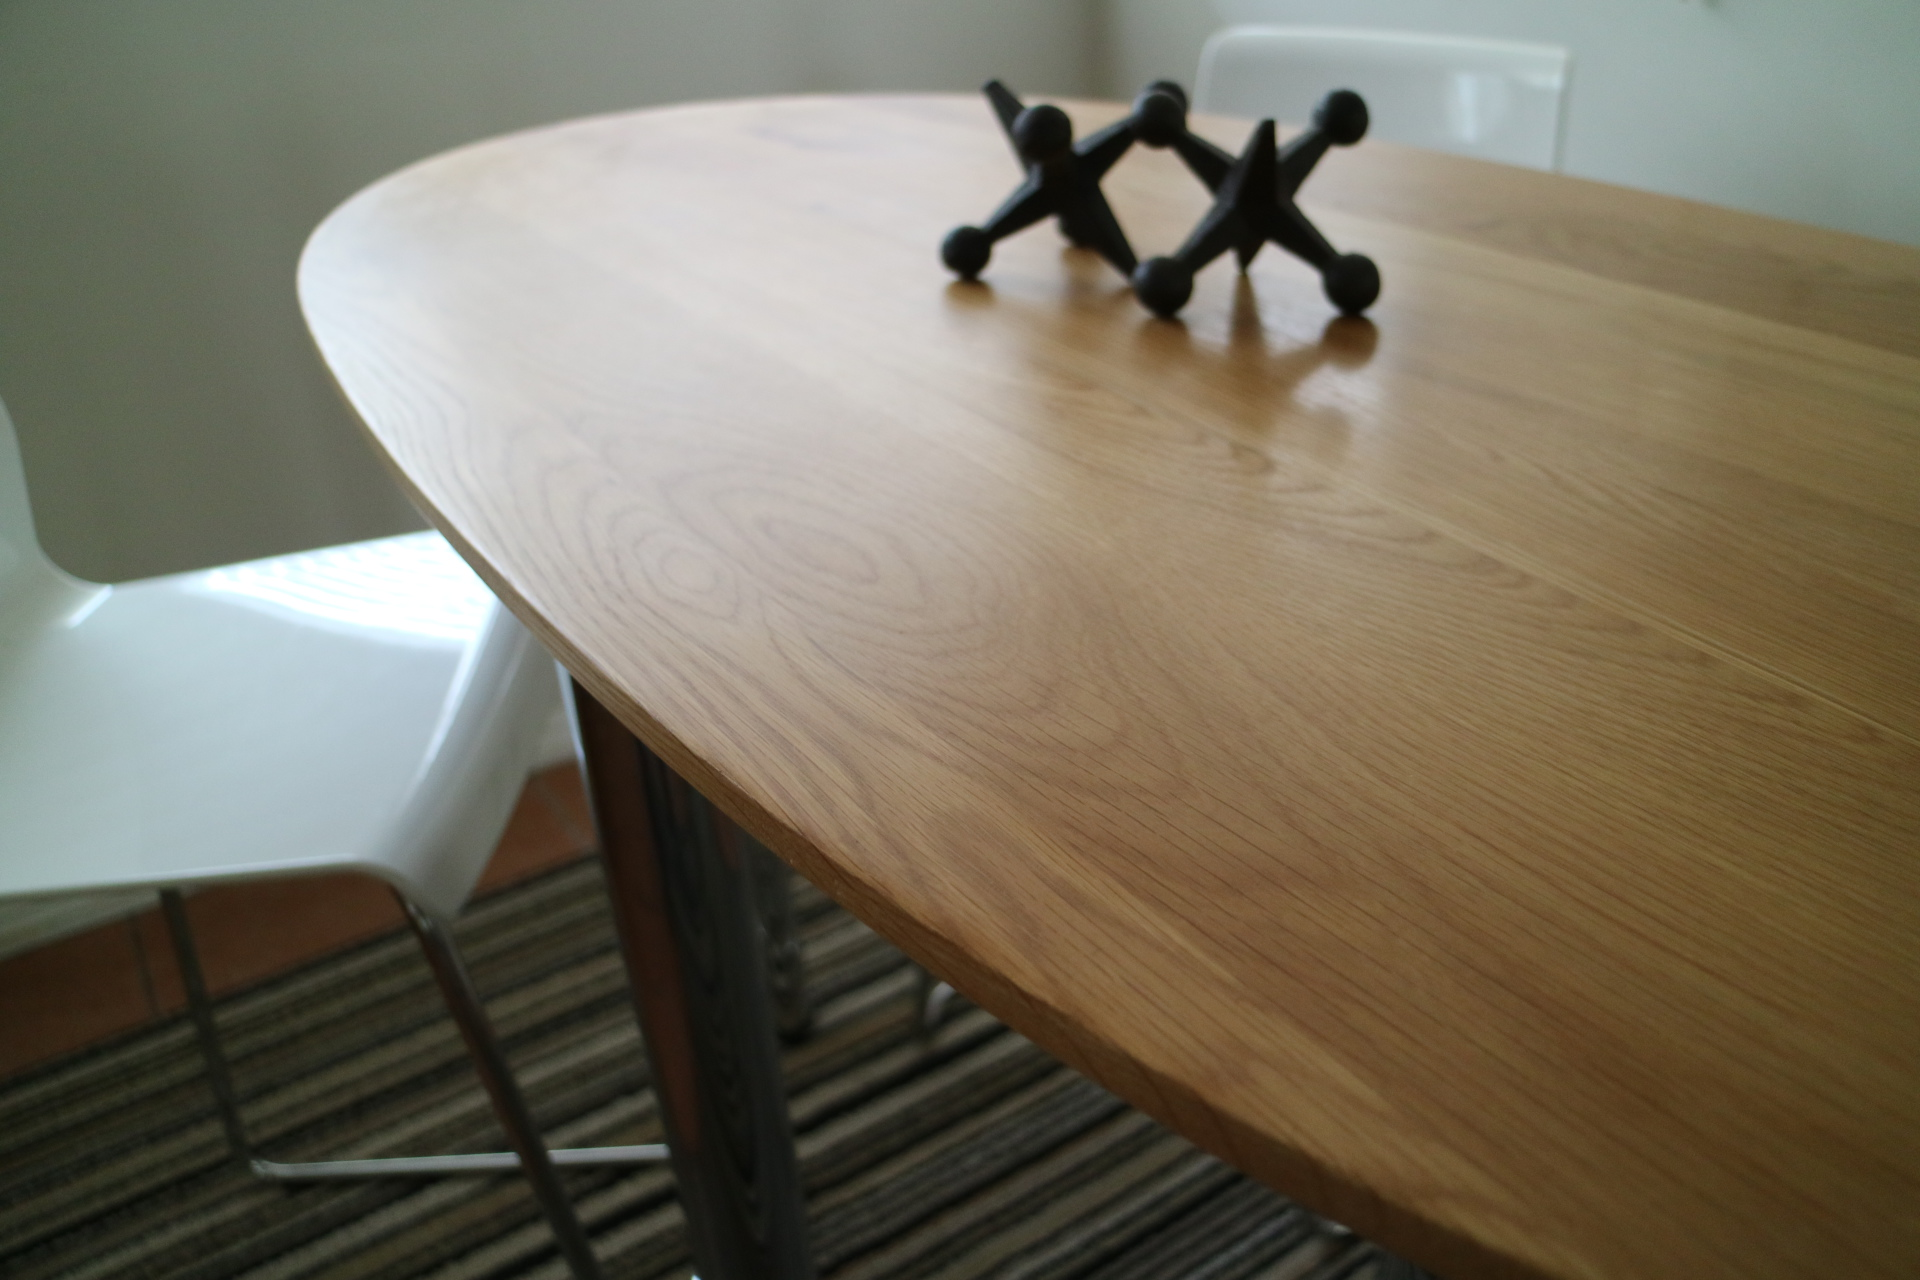 The Table with modern legs